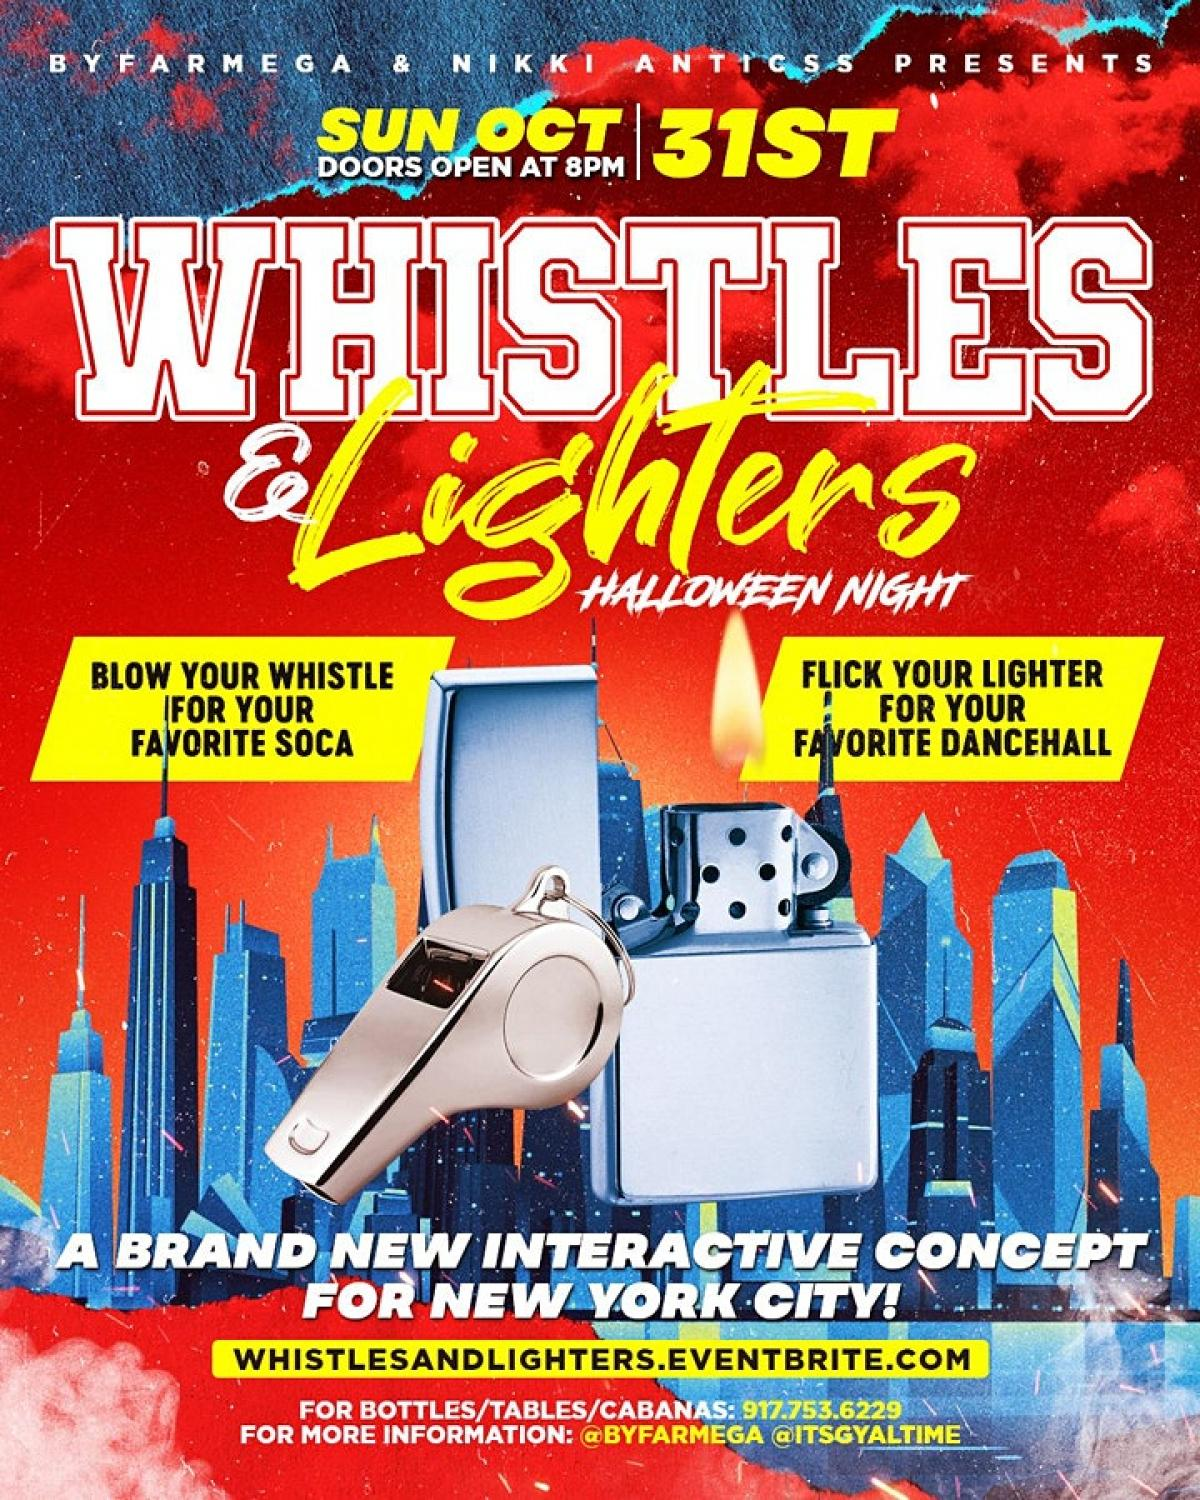 Whistles & Lighters: New York City flyer or graphic.